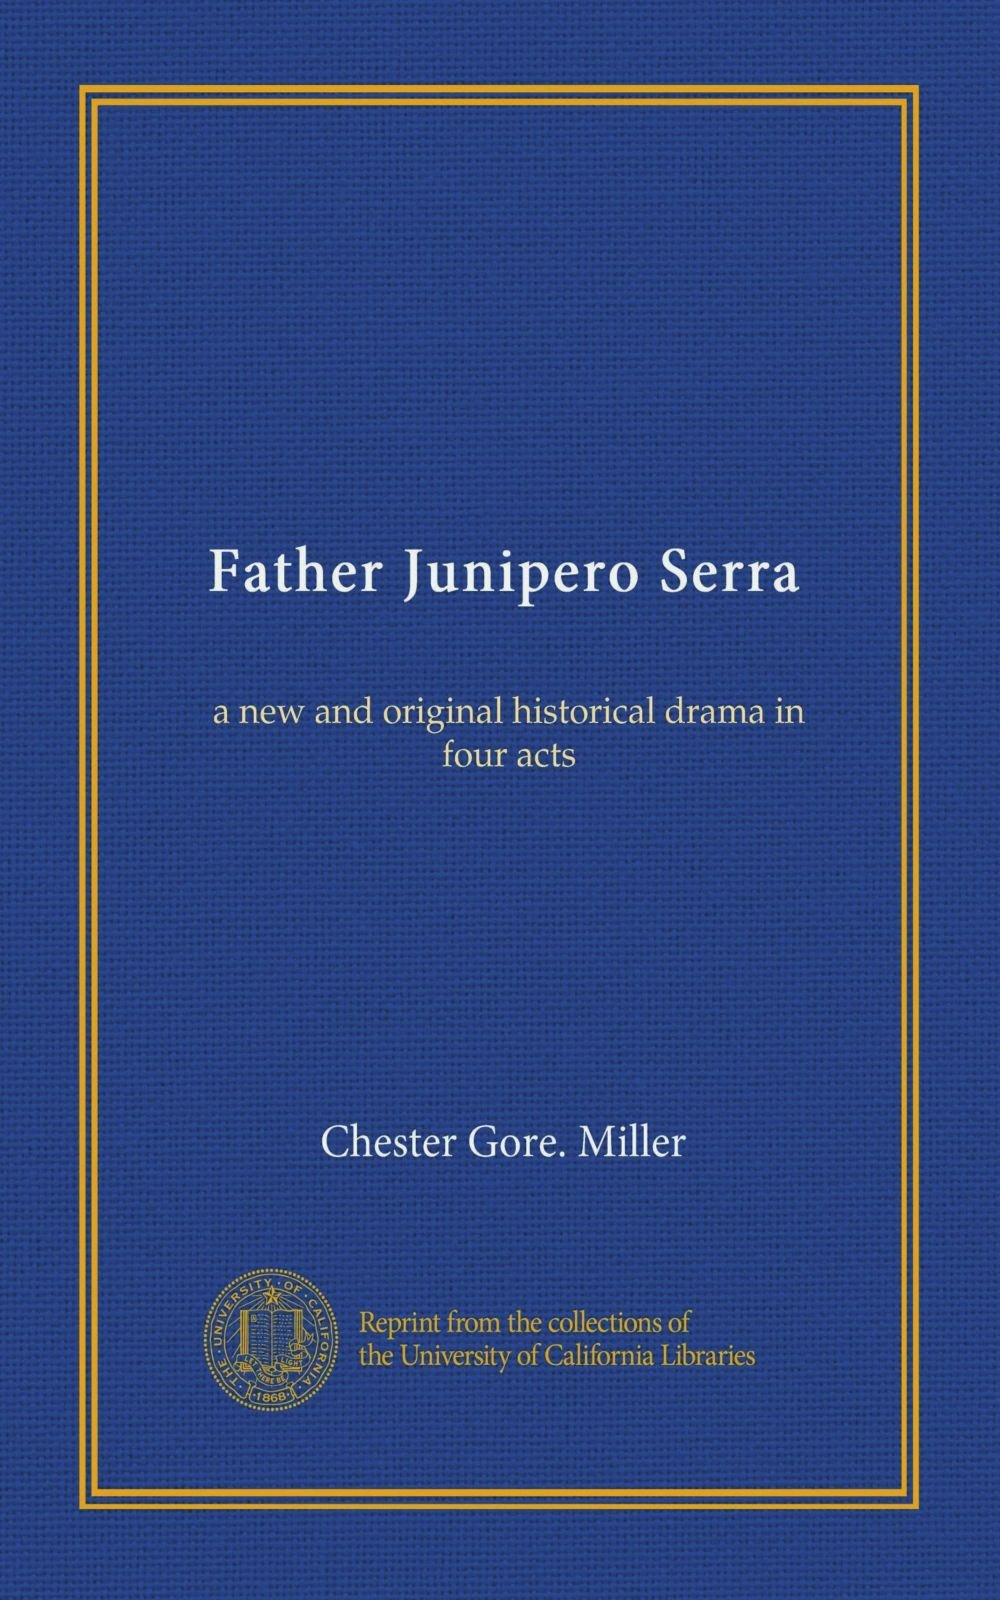 Download Father Junipero Serra: a new and original historical drama in four acts PDF